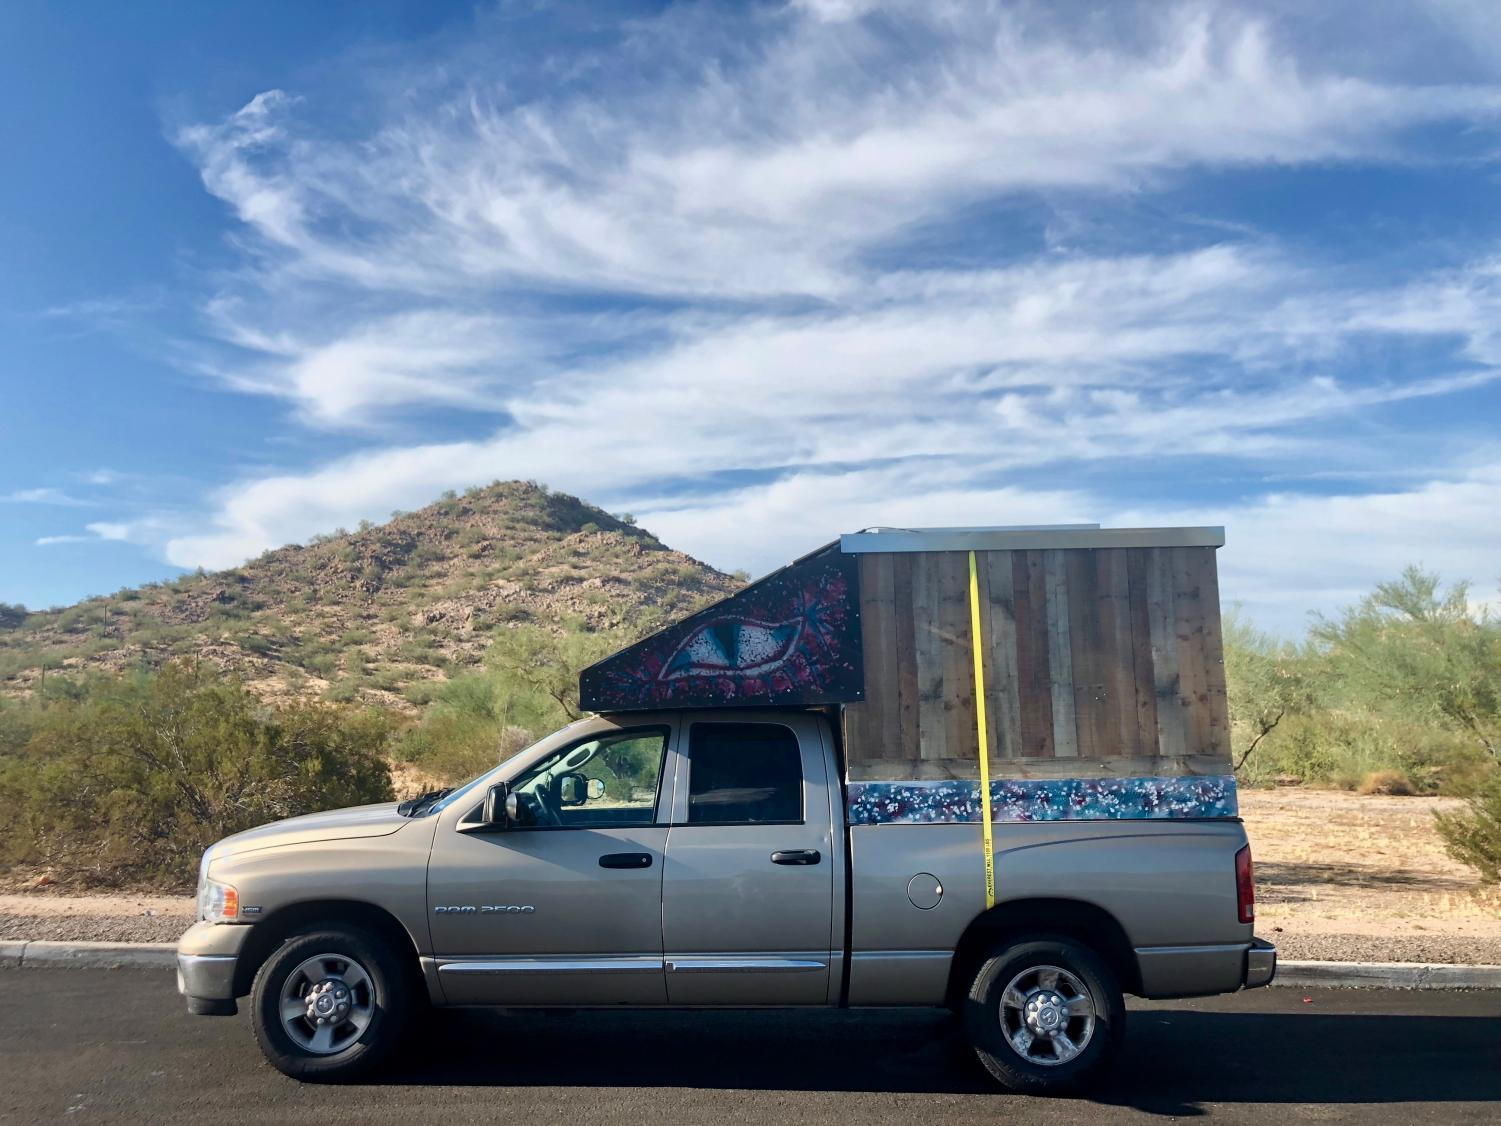 Michael O'Mahony travels all over to different nature reserves in his home, a Dodge RAM. His favorite location, Yuma, Arizona.